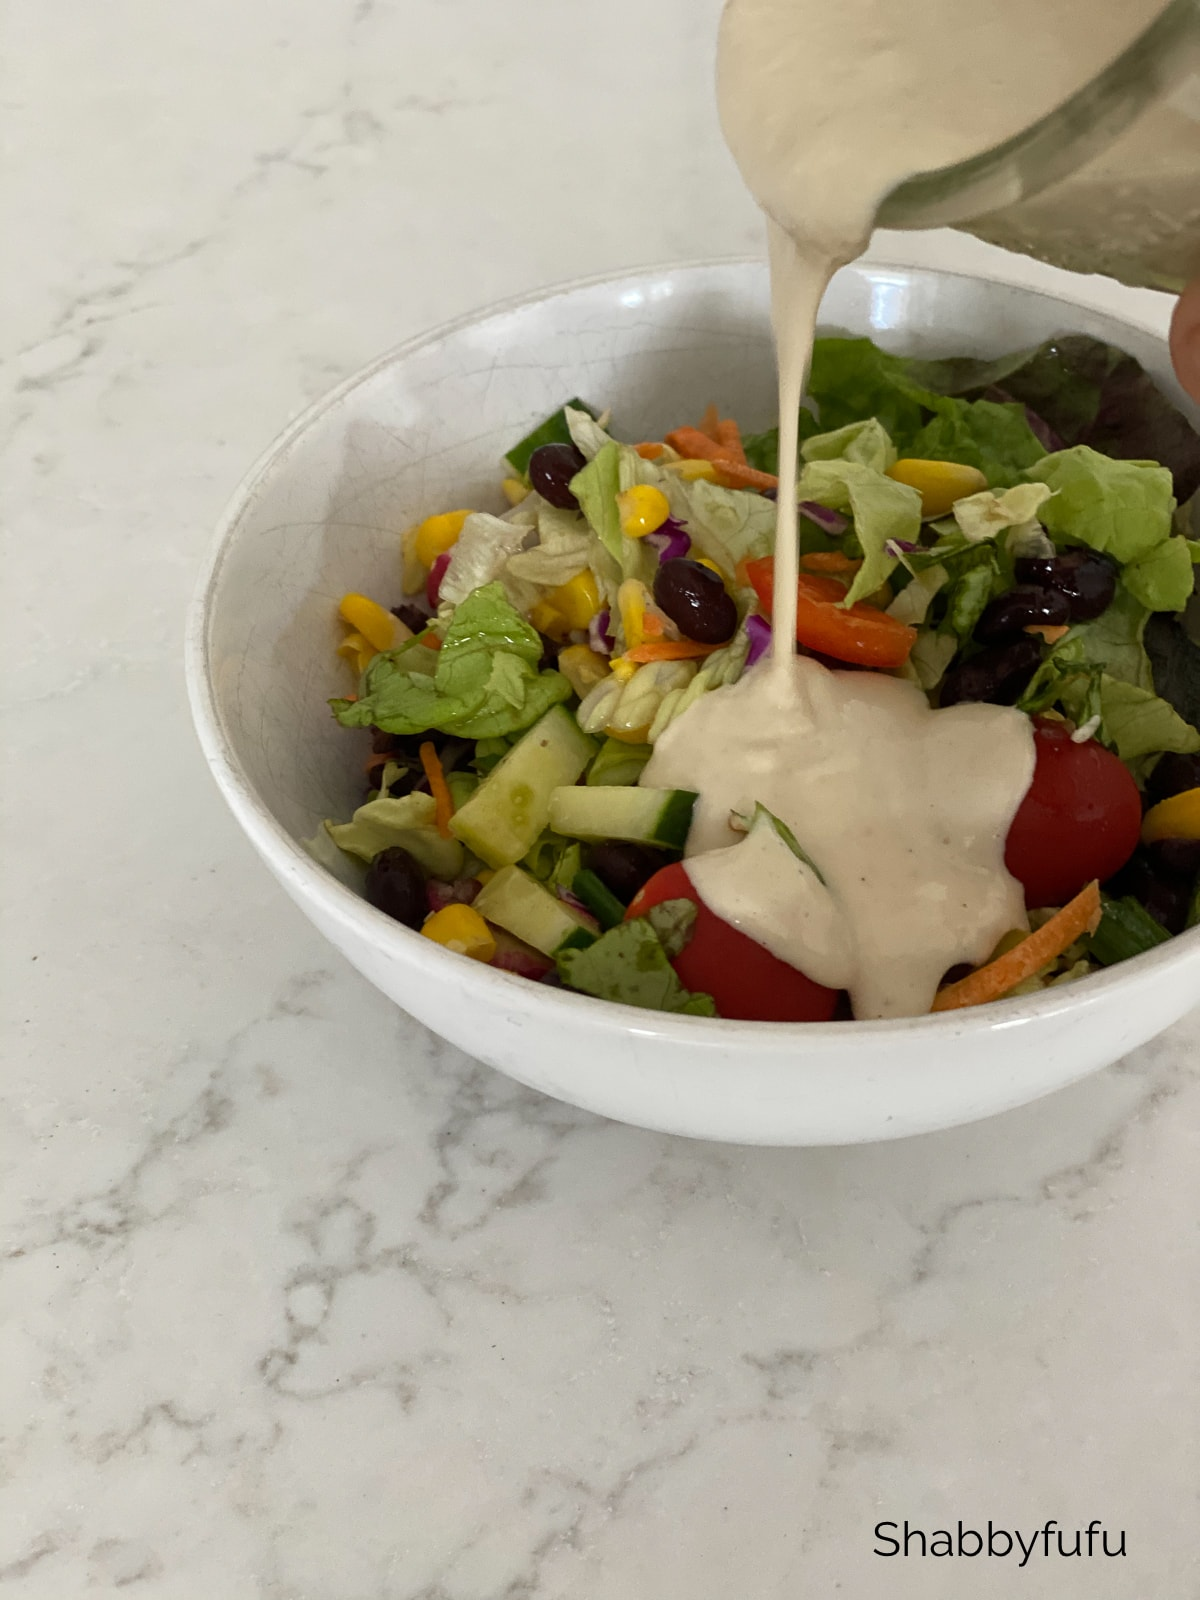 I try to eat a salad as big as my head every day! Home made vegan dressing